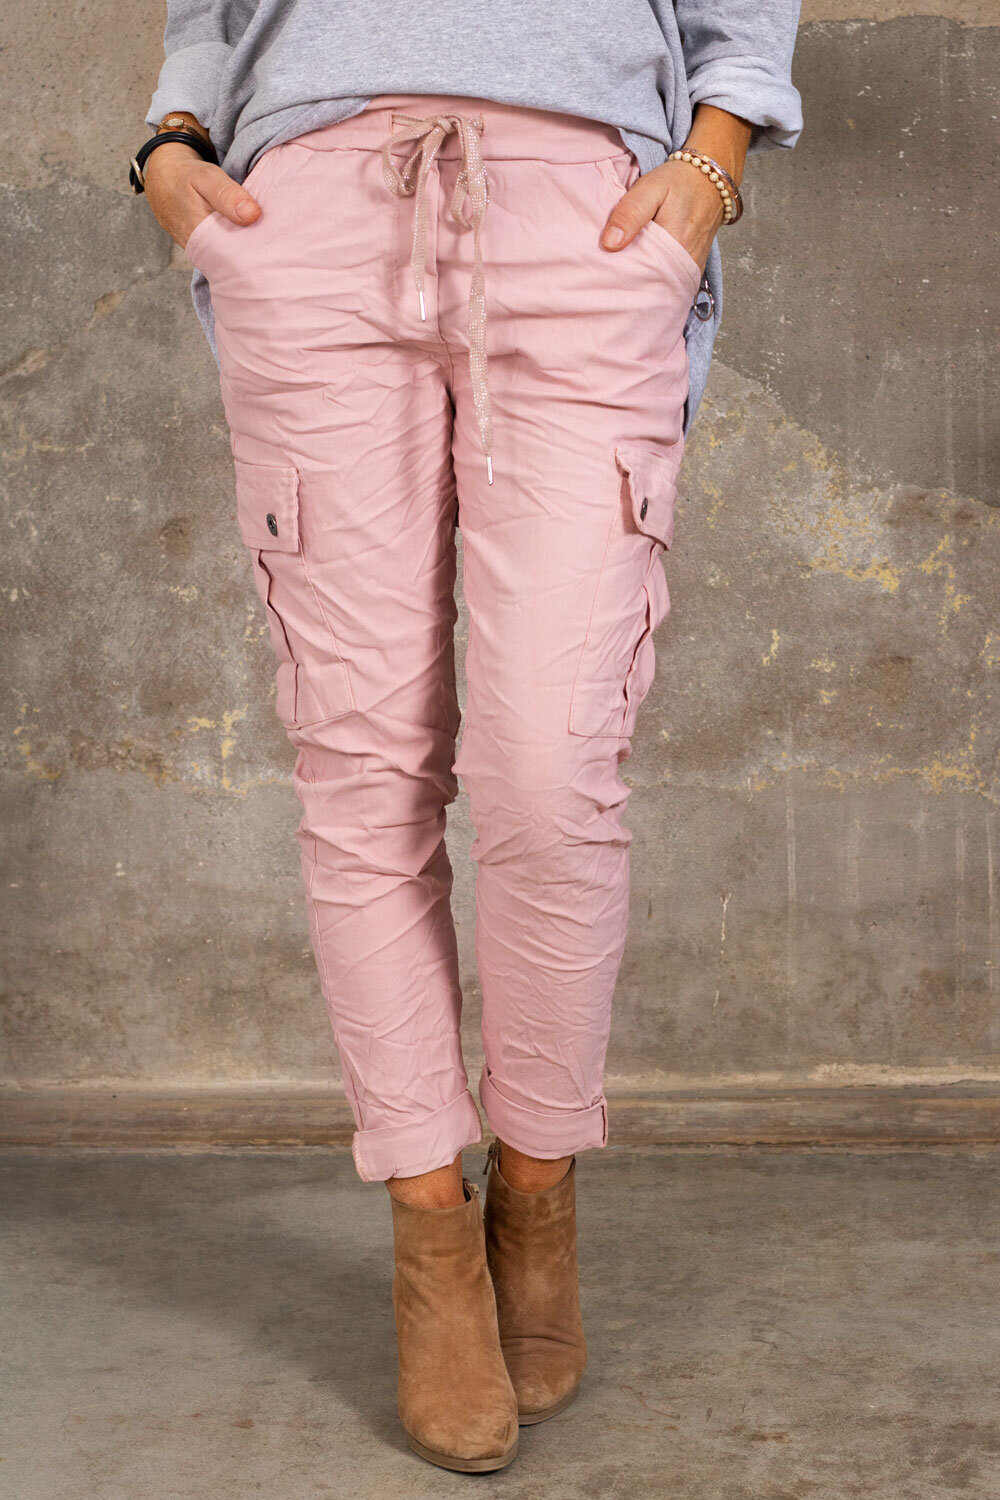 Stretchy Cargo Pants - Pink